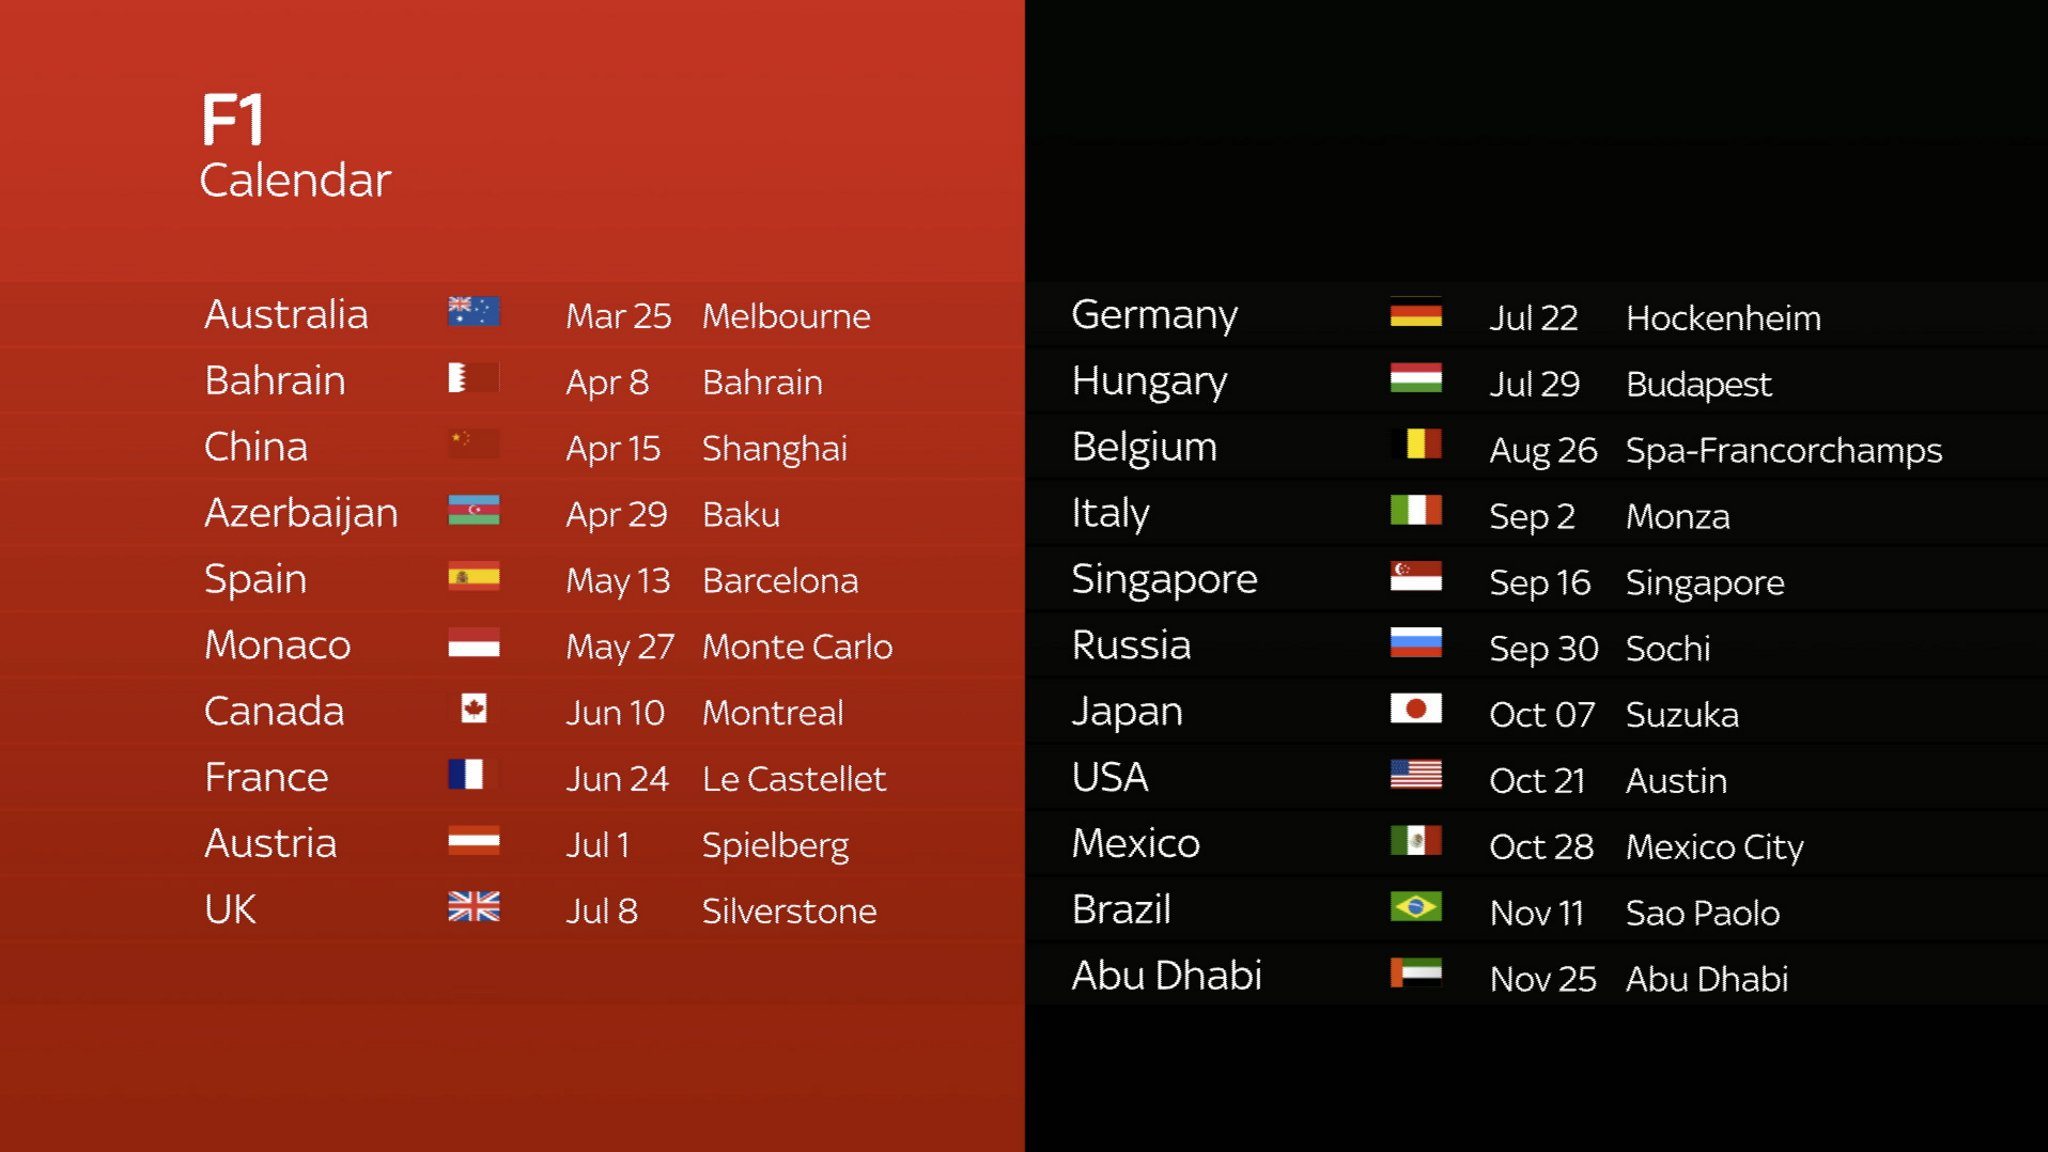 F1 2018: How To Add The 2018 Grand Prix Schedule To Your Smartphone Formula 1 Calendar 2019 Ical